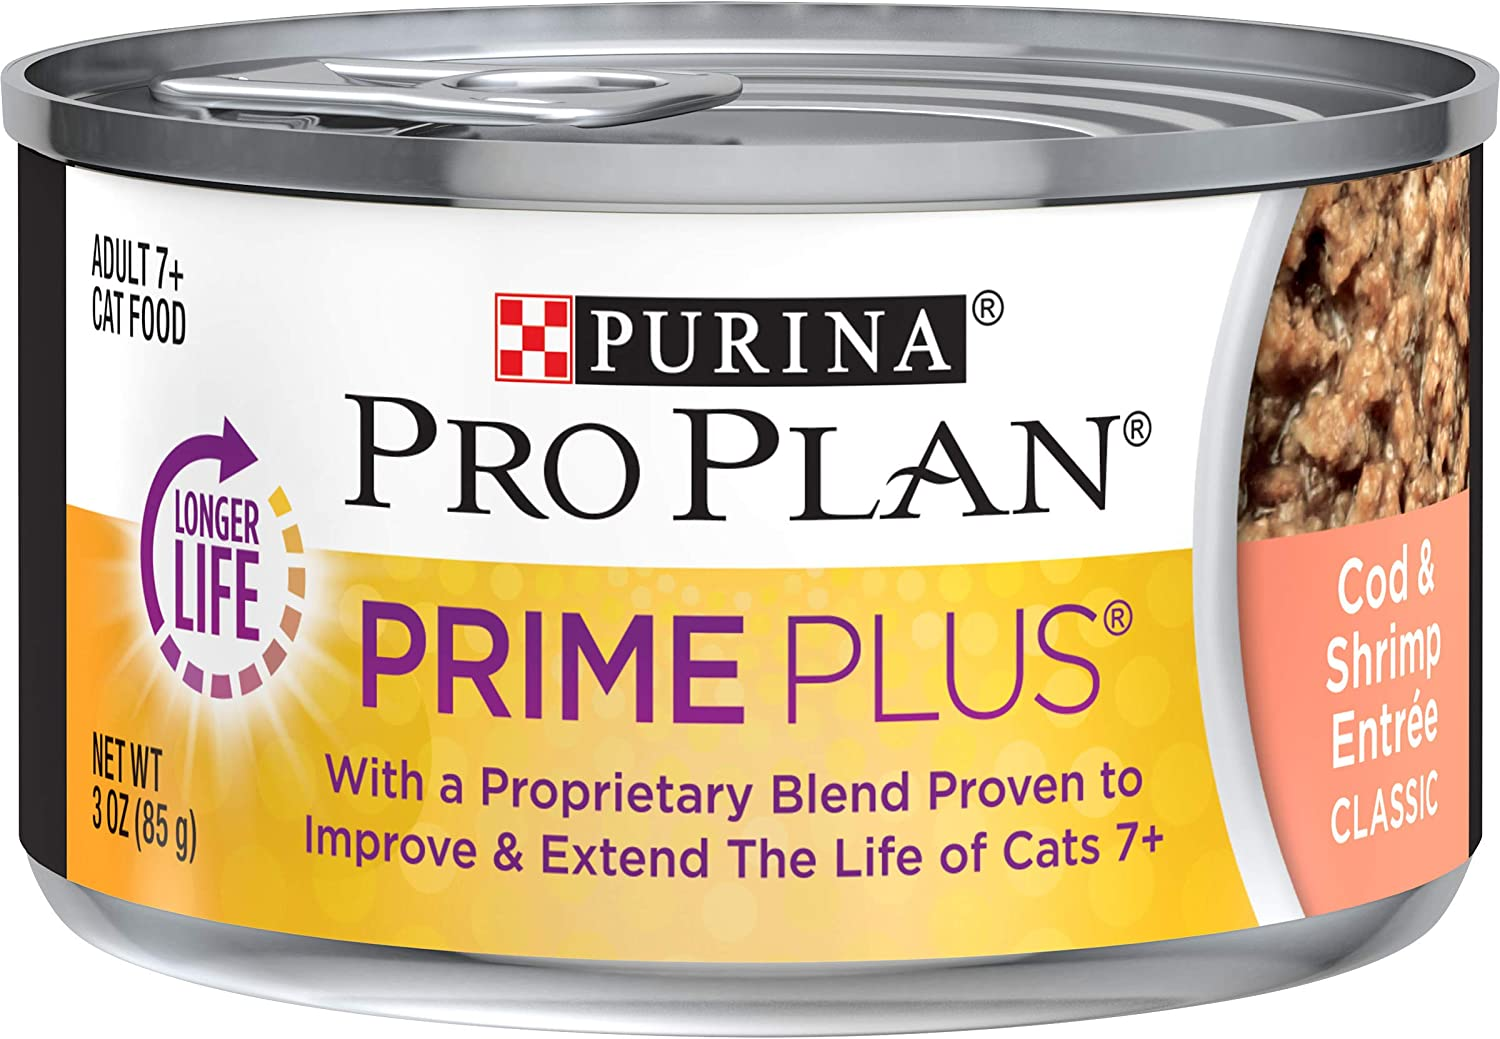 Purina Pro Plan Grain Free Senior Pate Wet Cat Food, PRIME PLUS Cod & Shrimp Entree - (24) 3 oz. Pull-Top Cans